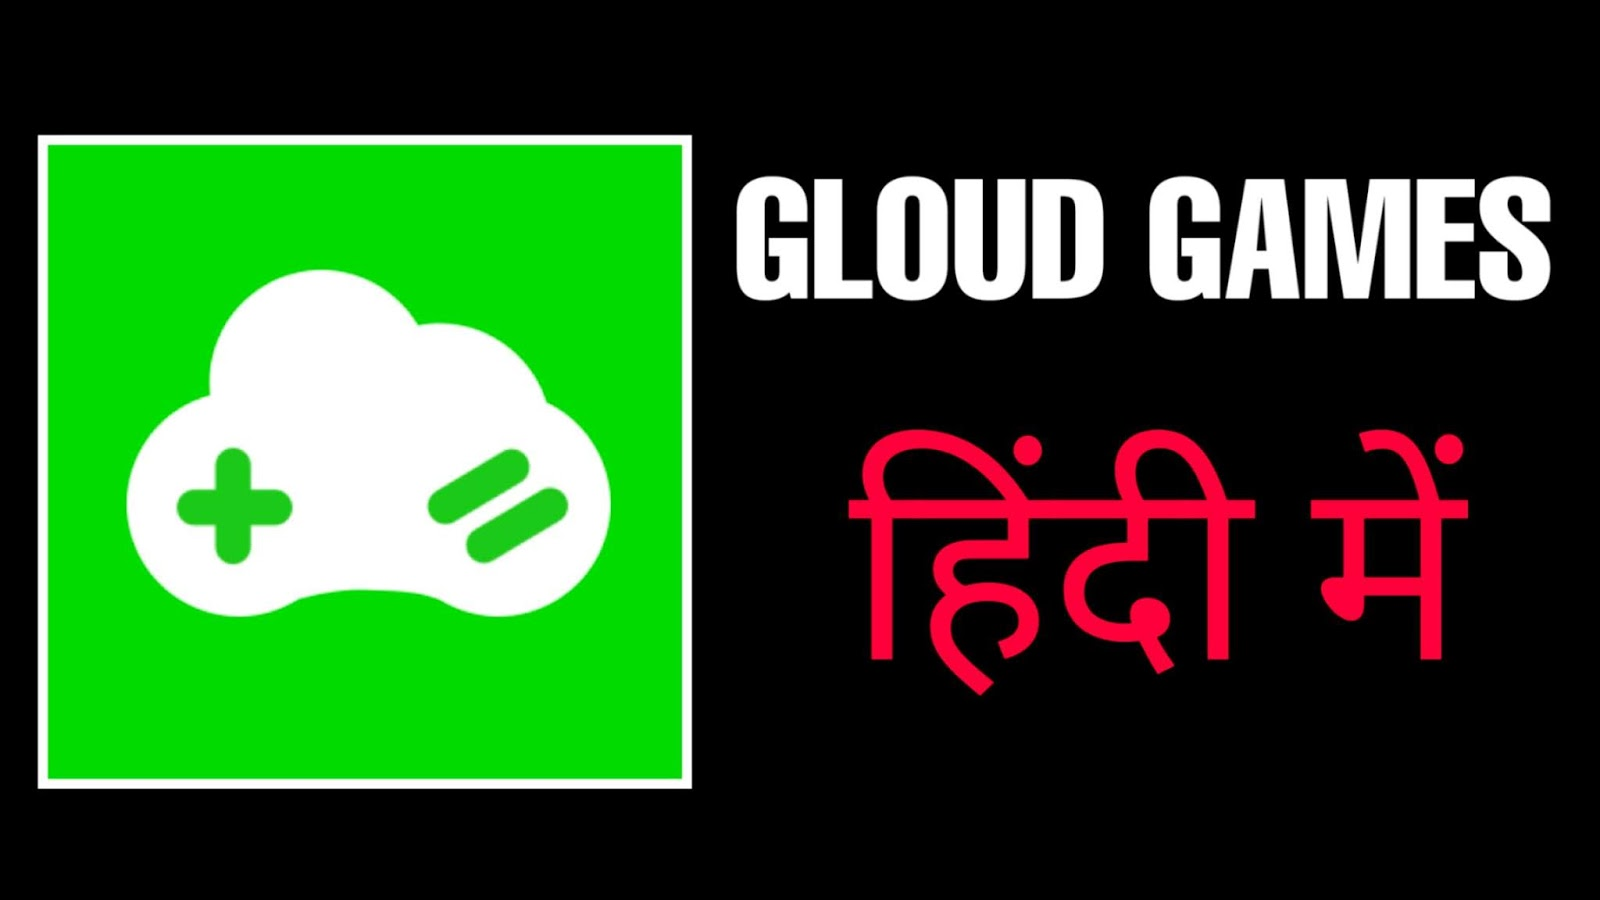 Aboutgloud games